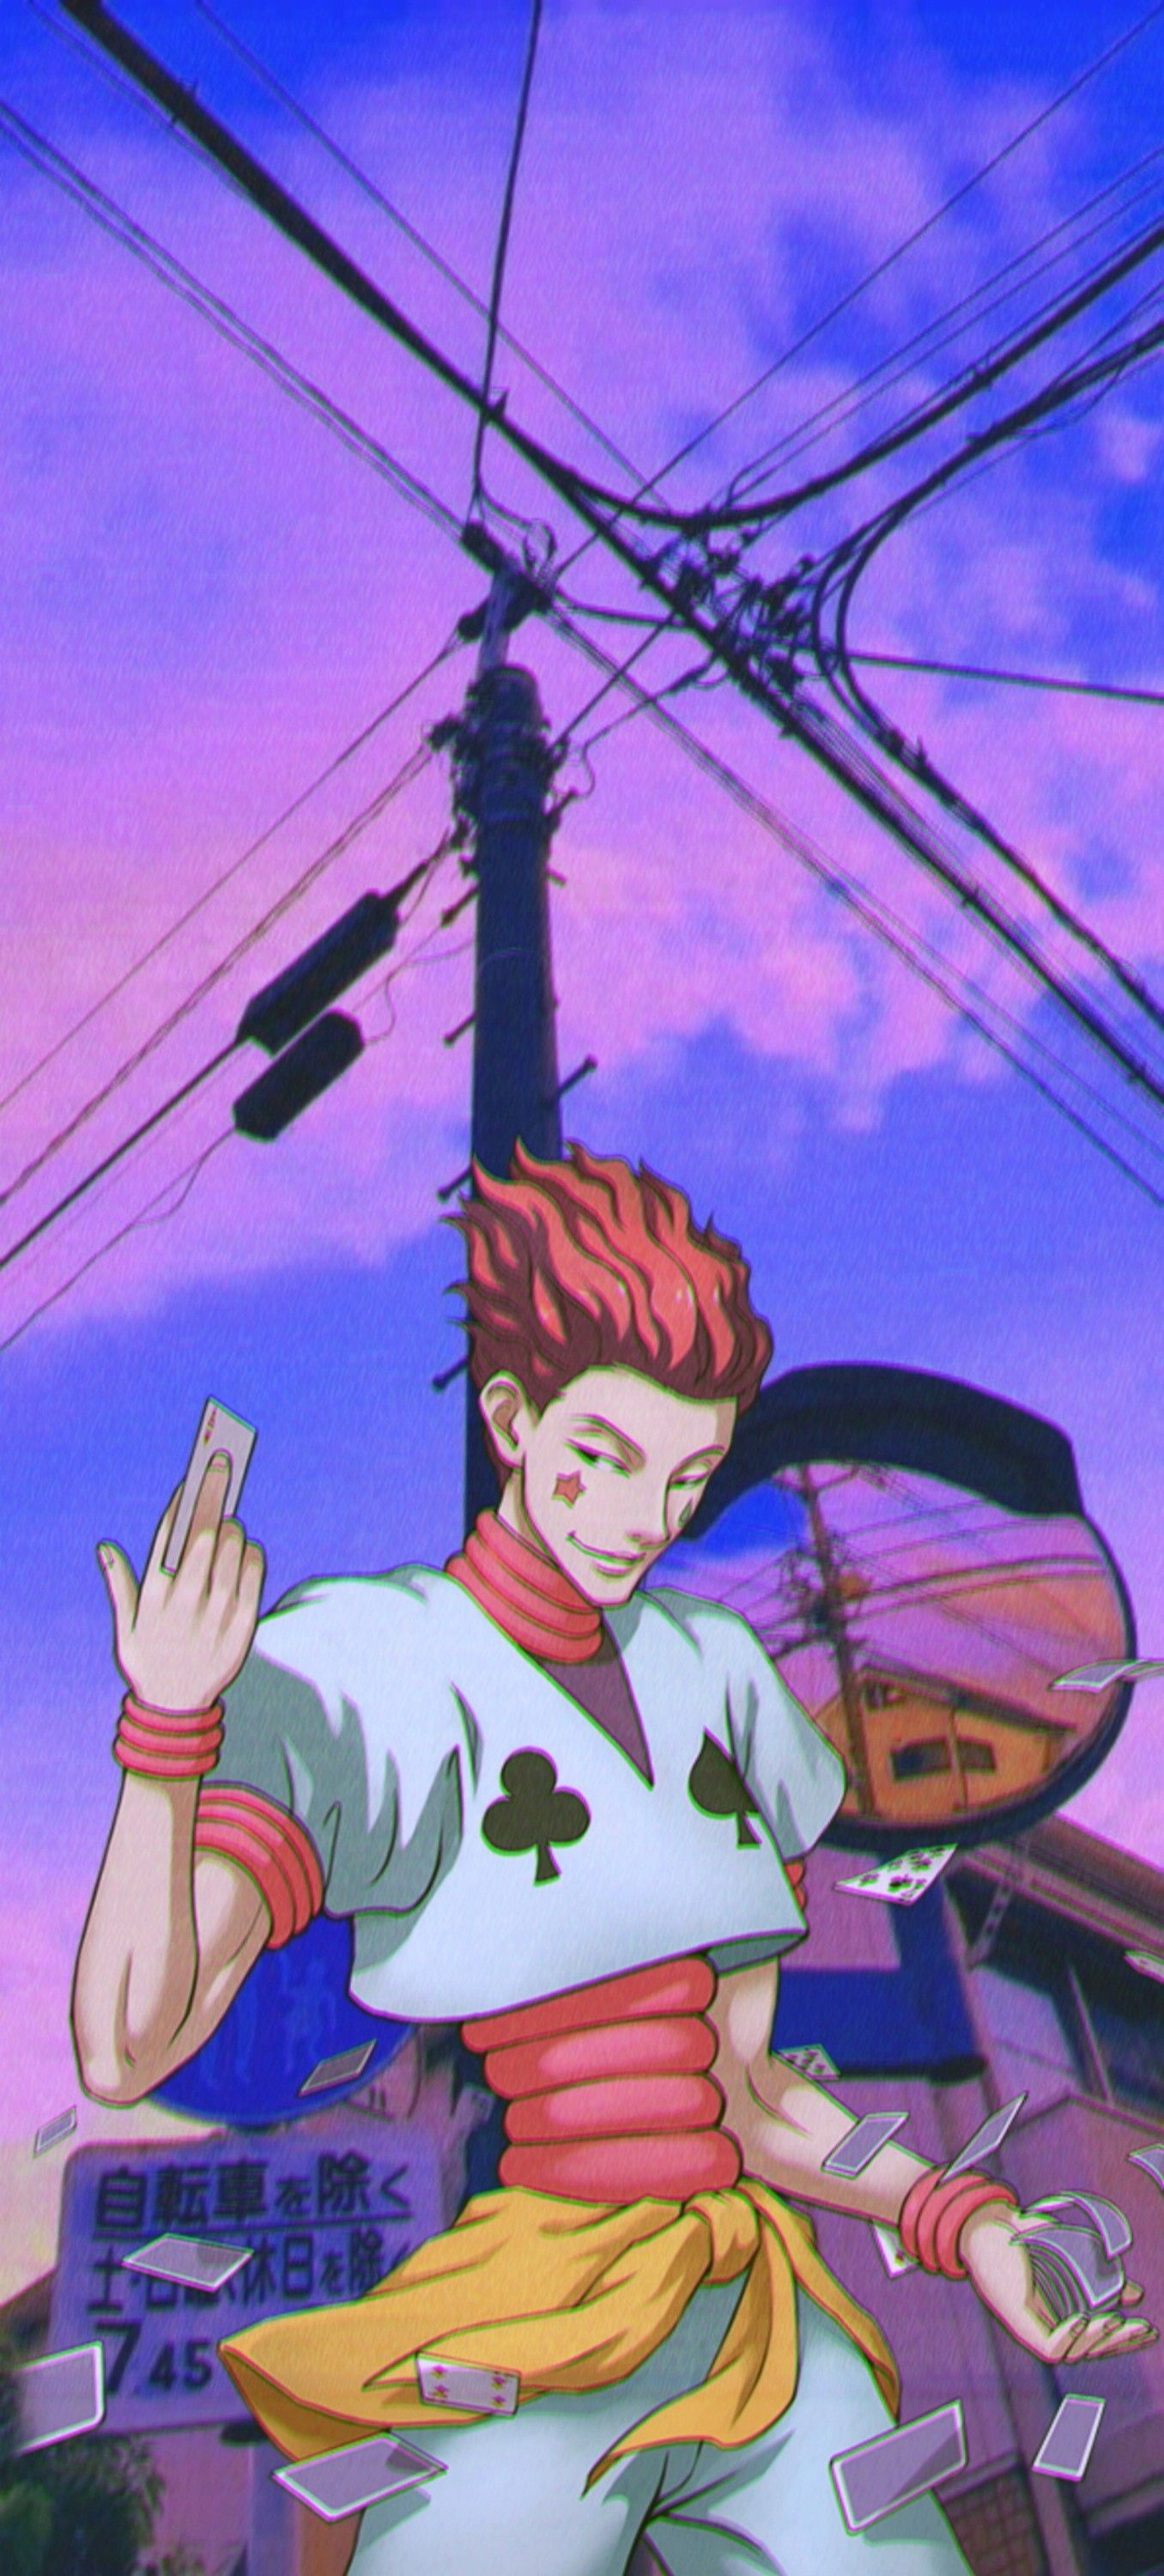 A collection of the top 37 hunter x hunter phone wallpapers and backgrounds available for download for free. Pin on Hisoka | Anime wallpaper iphone, Anime, Cool anime ...